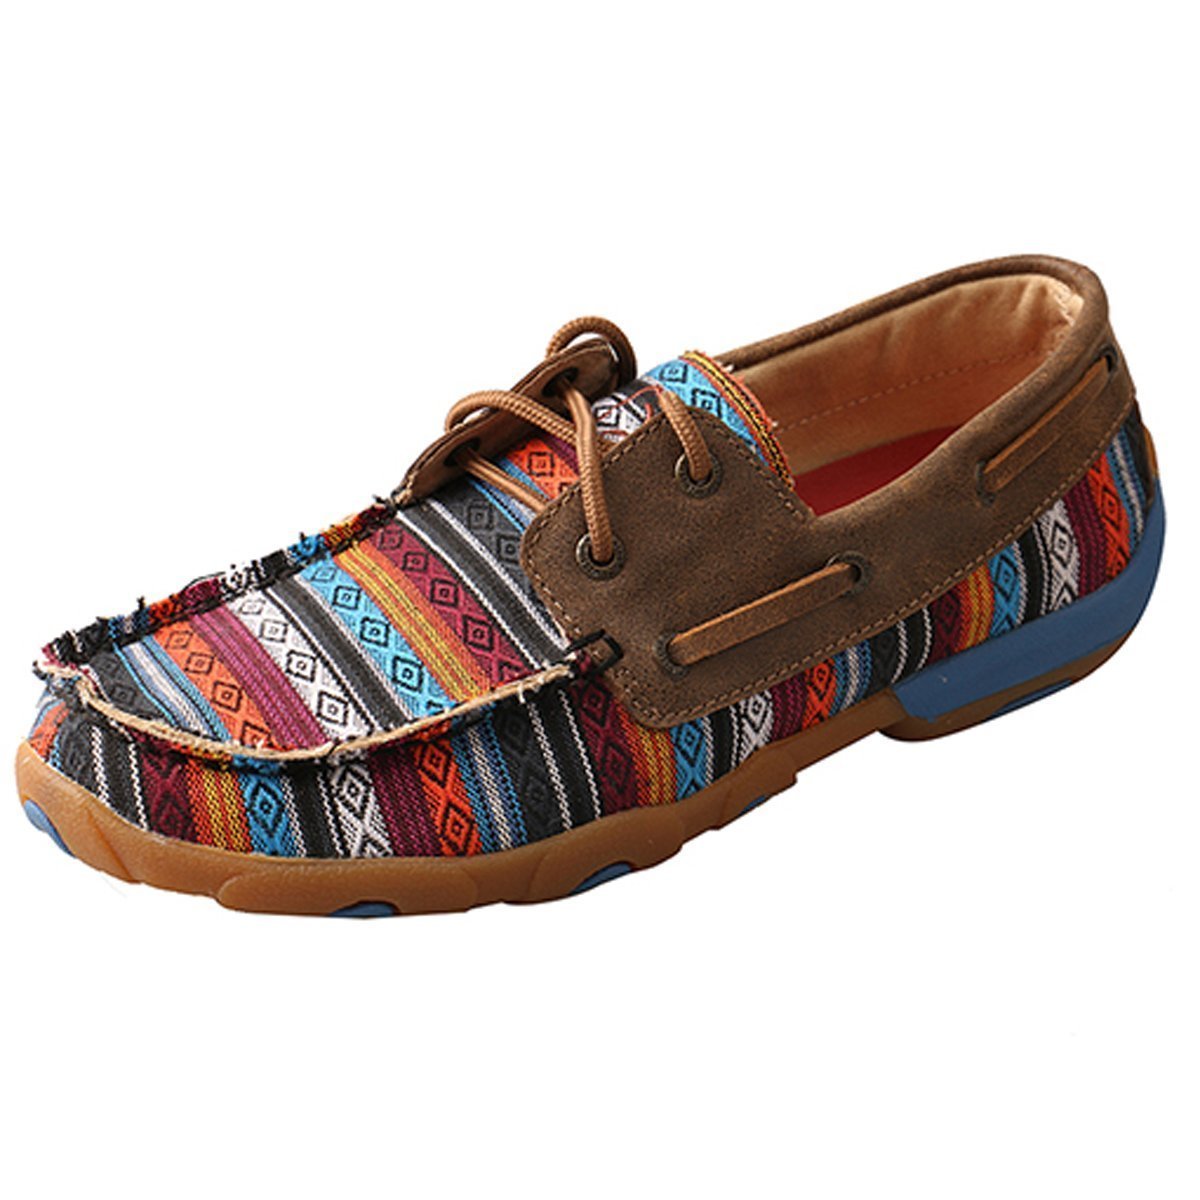 Twisted X Women's Driving Moccasin in Serape Canvas B074BQMVZP 11 B(M) US|Serape/Bomber